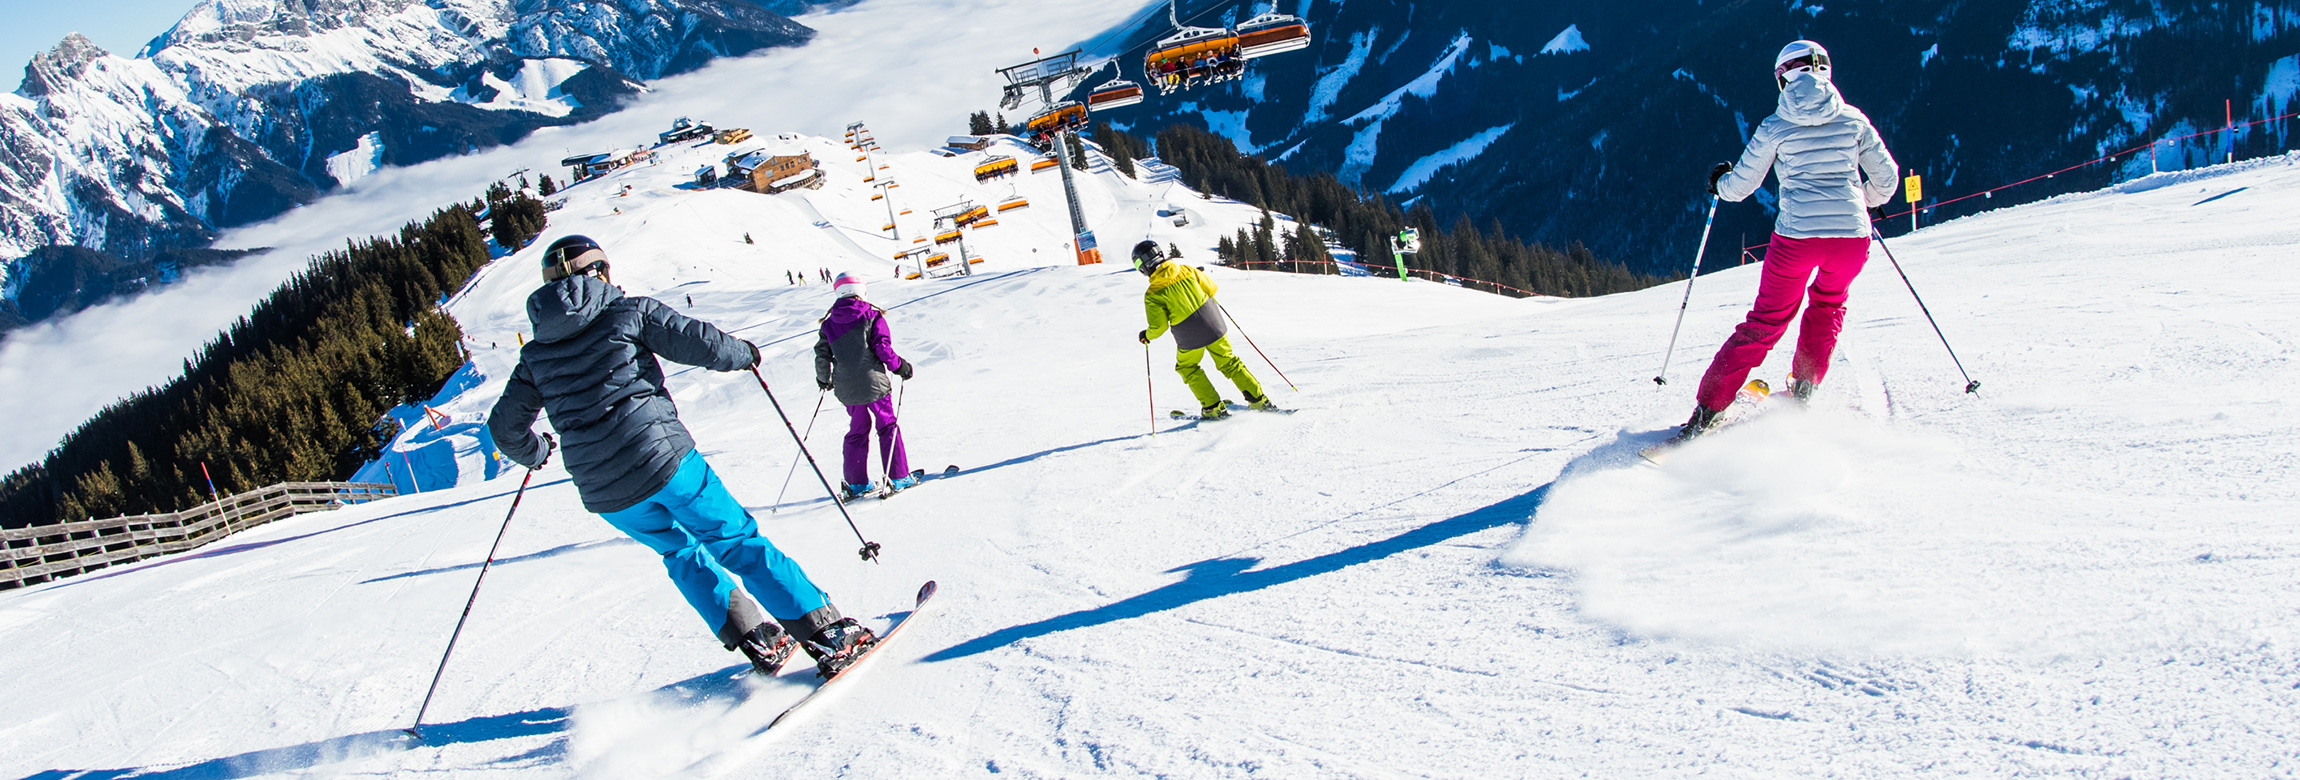 RS5362 Wintersport Saalbach Hinterglemm By BAUSE Presse 203